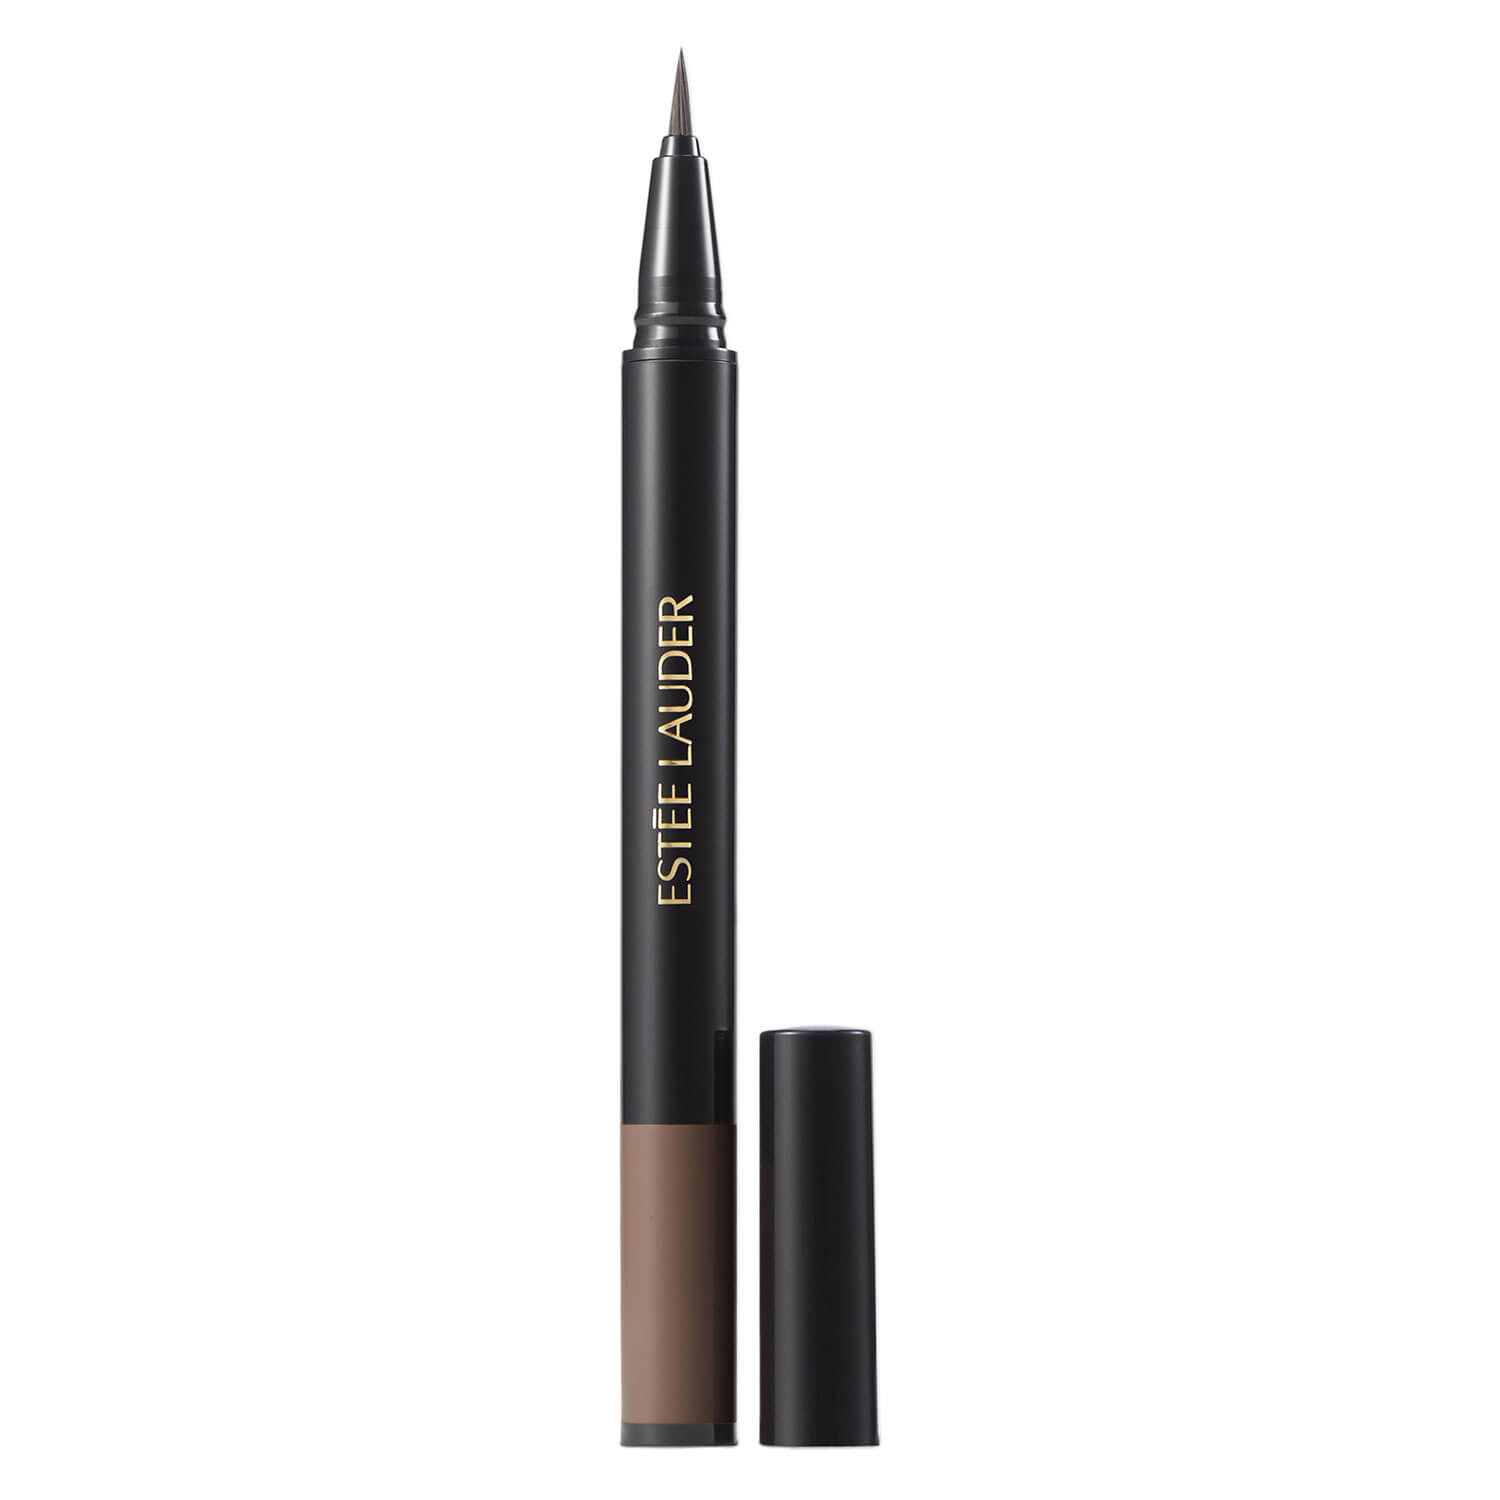 Featherlight - Brow Enhancer Light Brunette